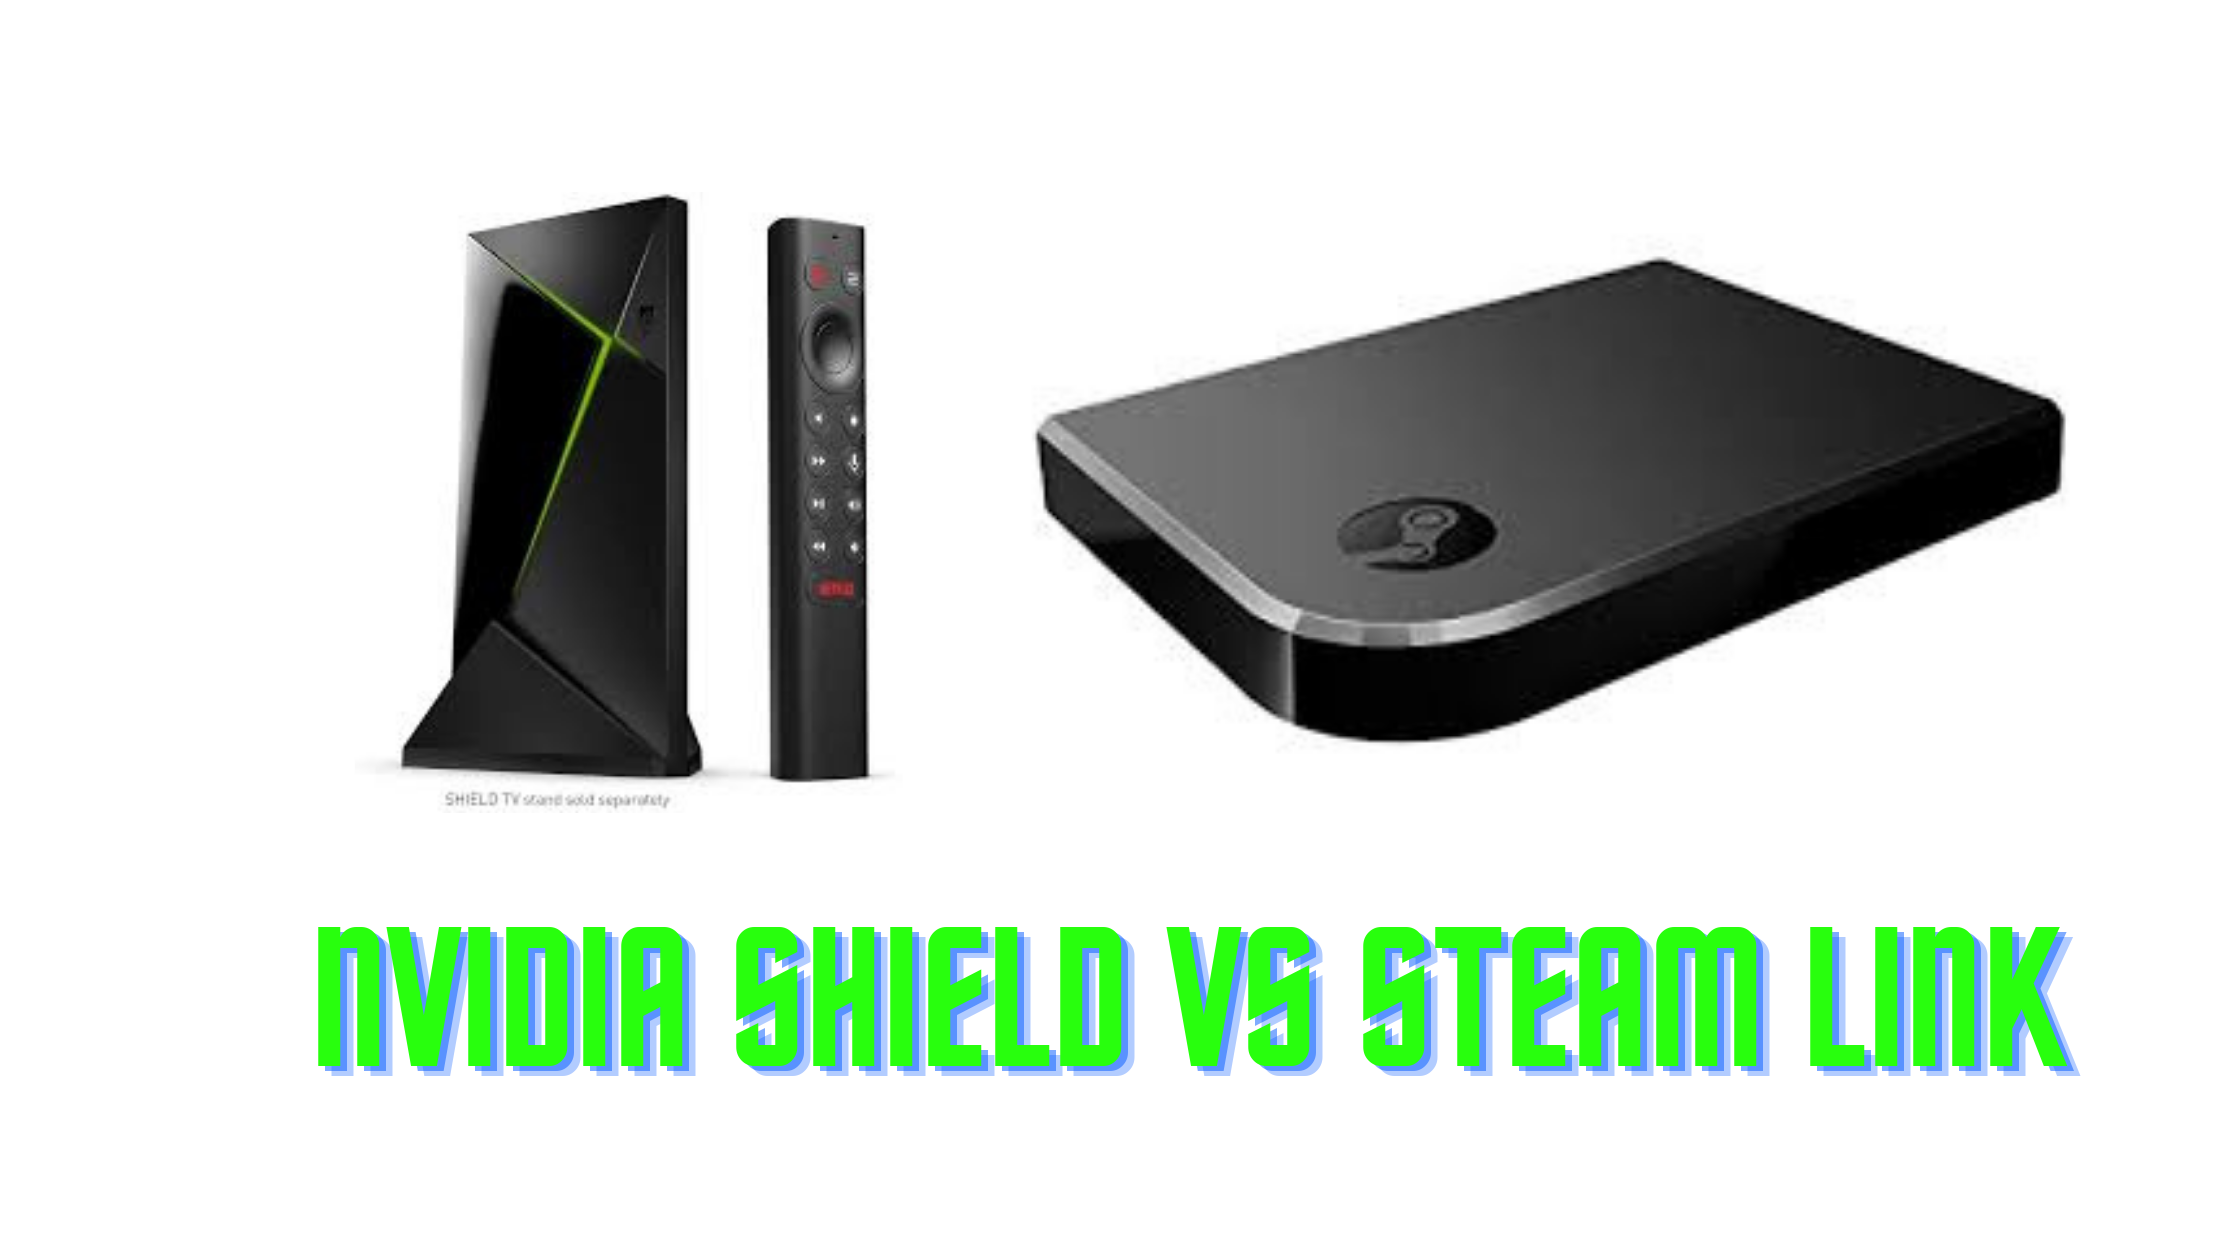 Nvidia shield vs steam link